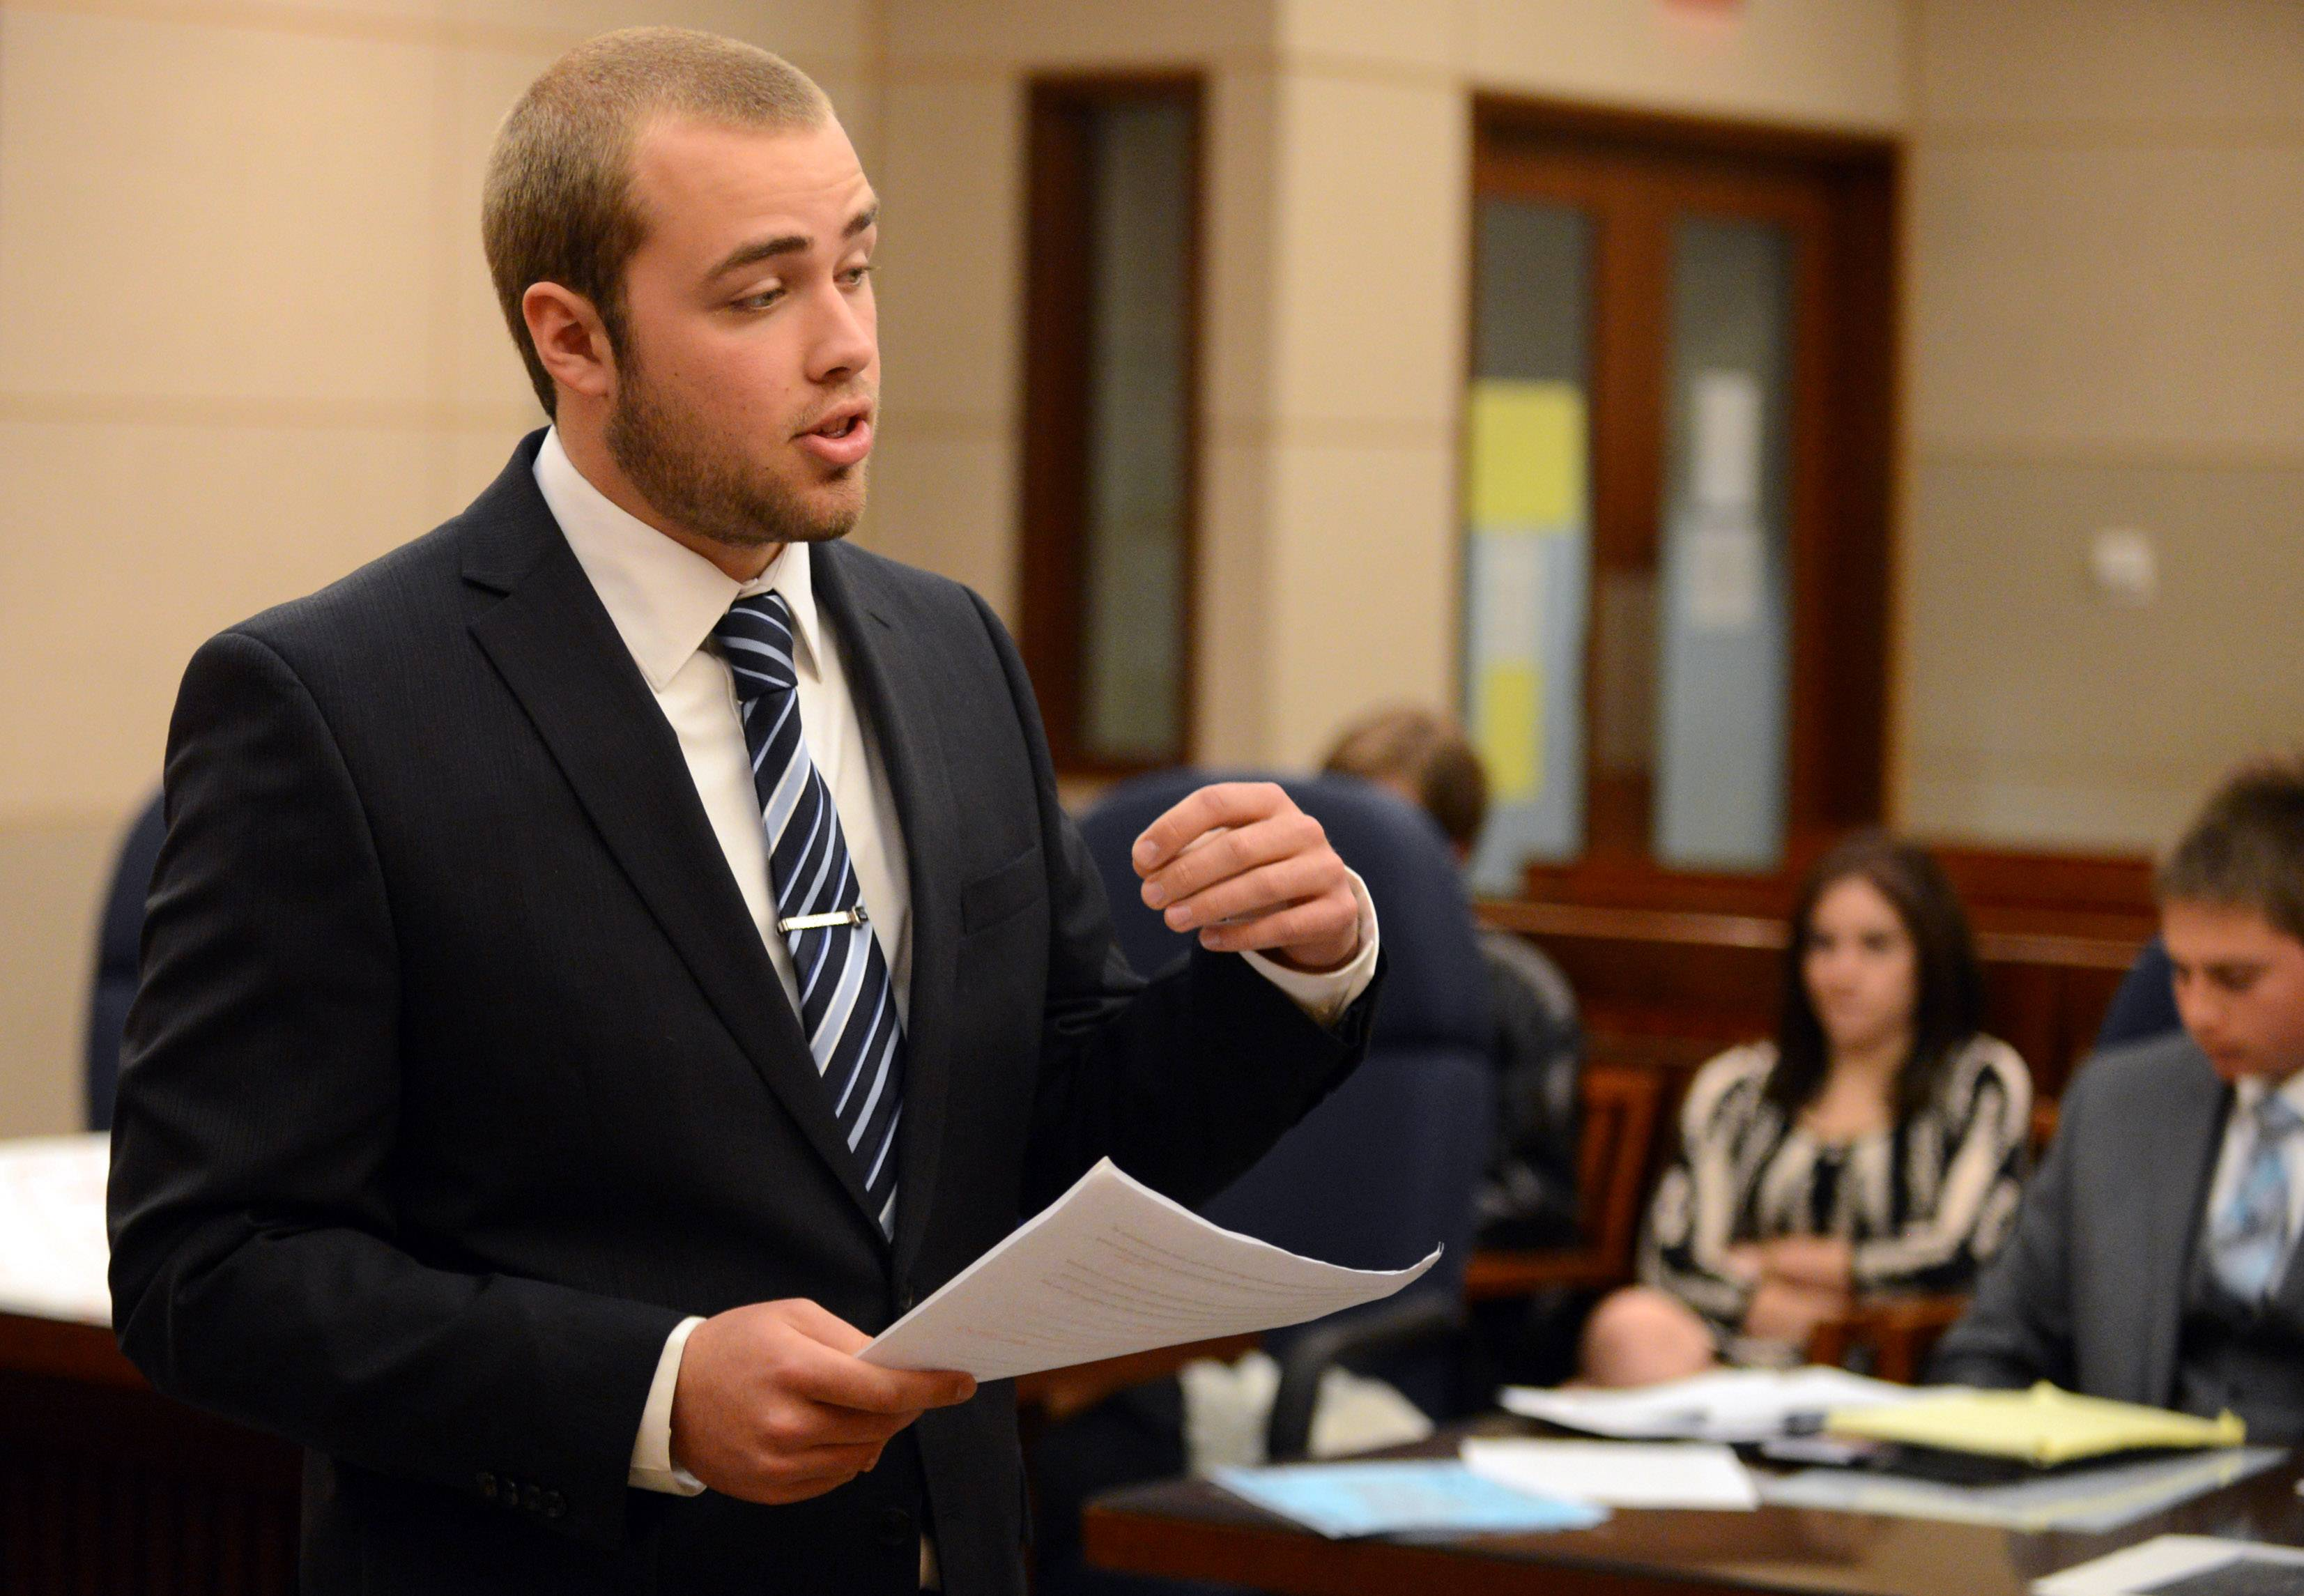 Bartlett's Andrew Eckelberry offers the prosecution's opening remarks during the Law Day Mock Trial Program Friday at the Kane County Courthouse in St. Charles.